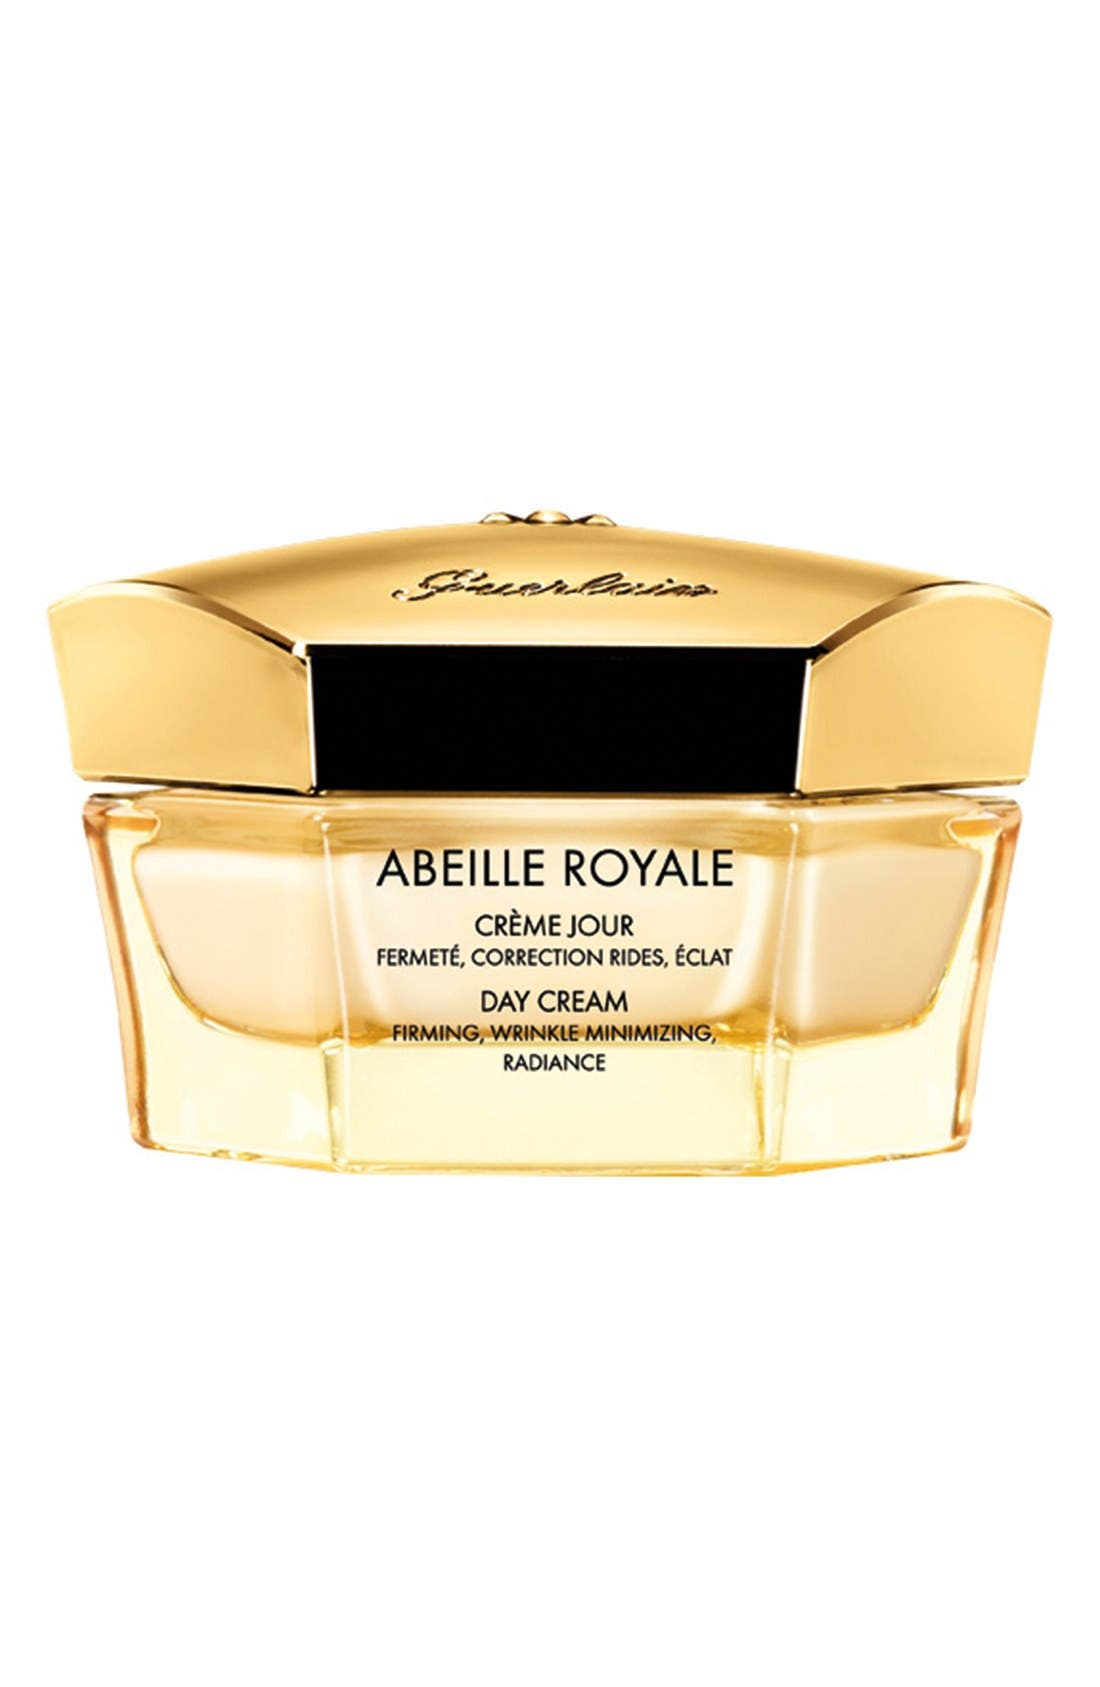 Abeille Royale Normal Day Cream,                         Main,                         color, 000